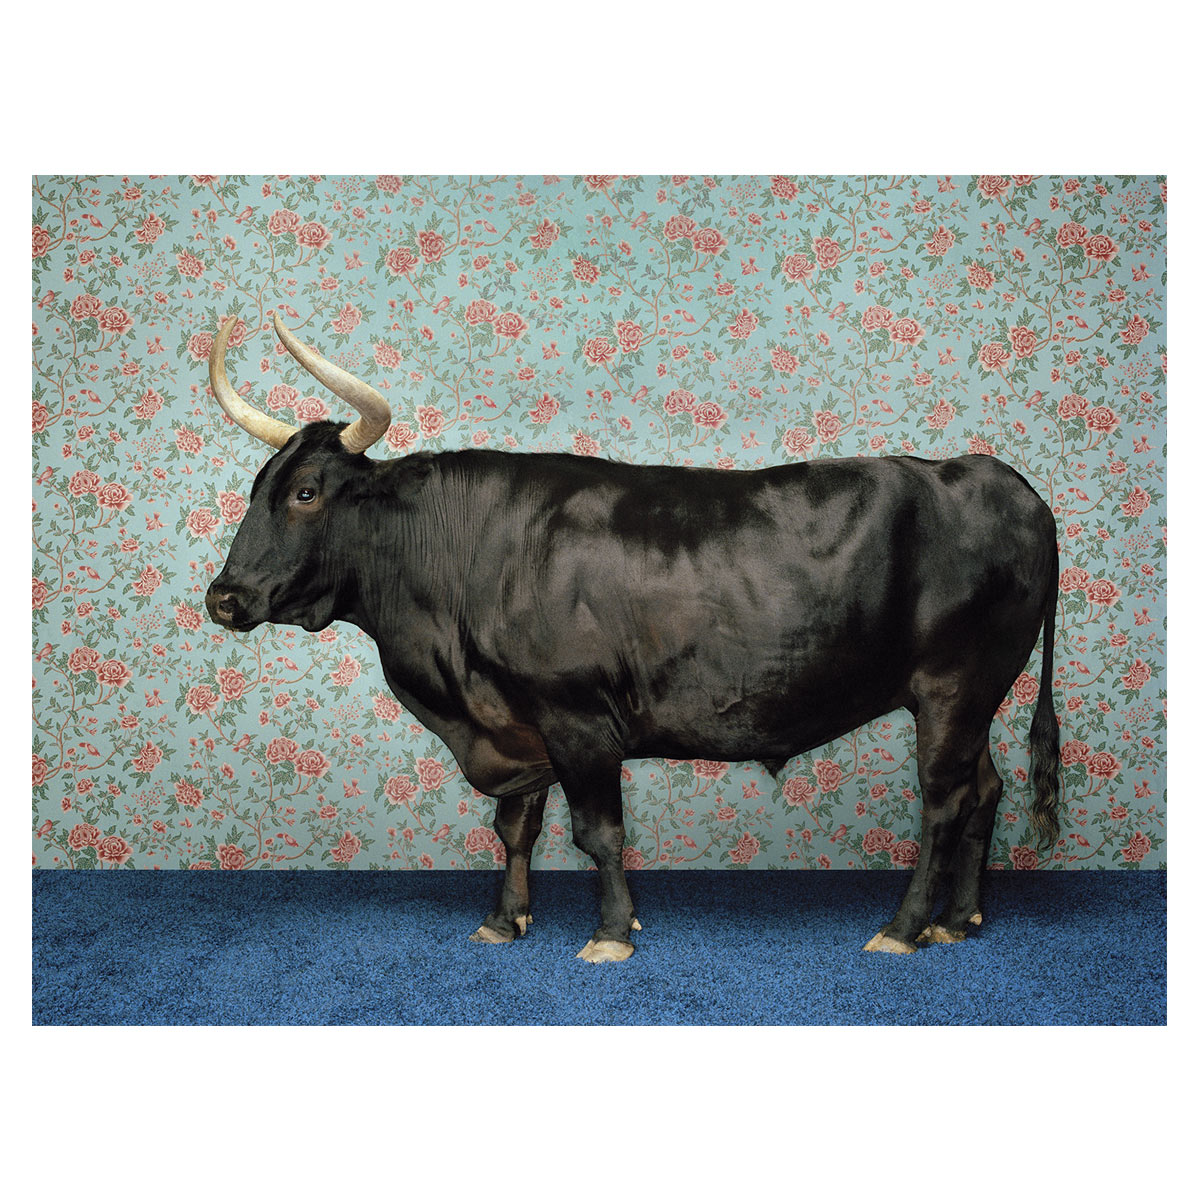 Posh Bull Canvas Art